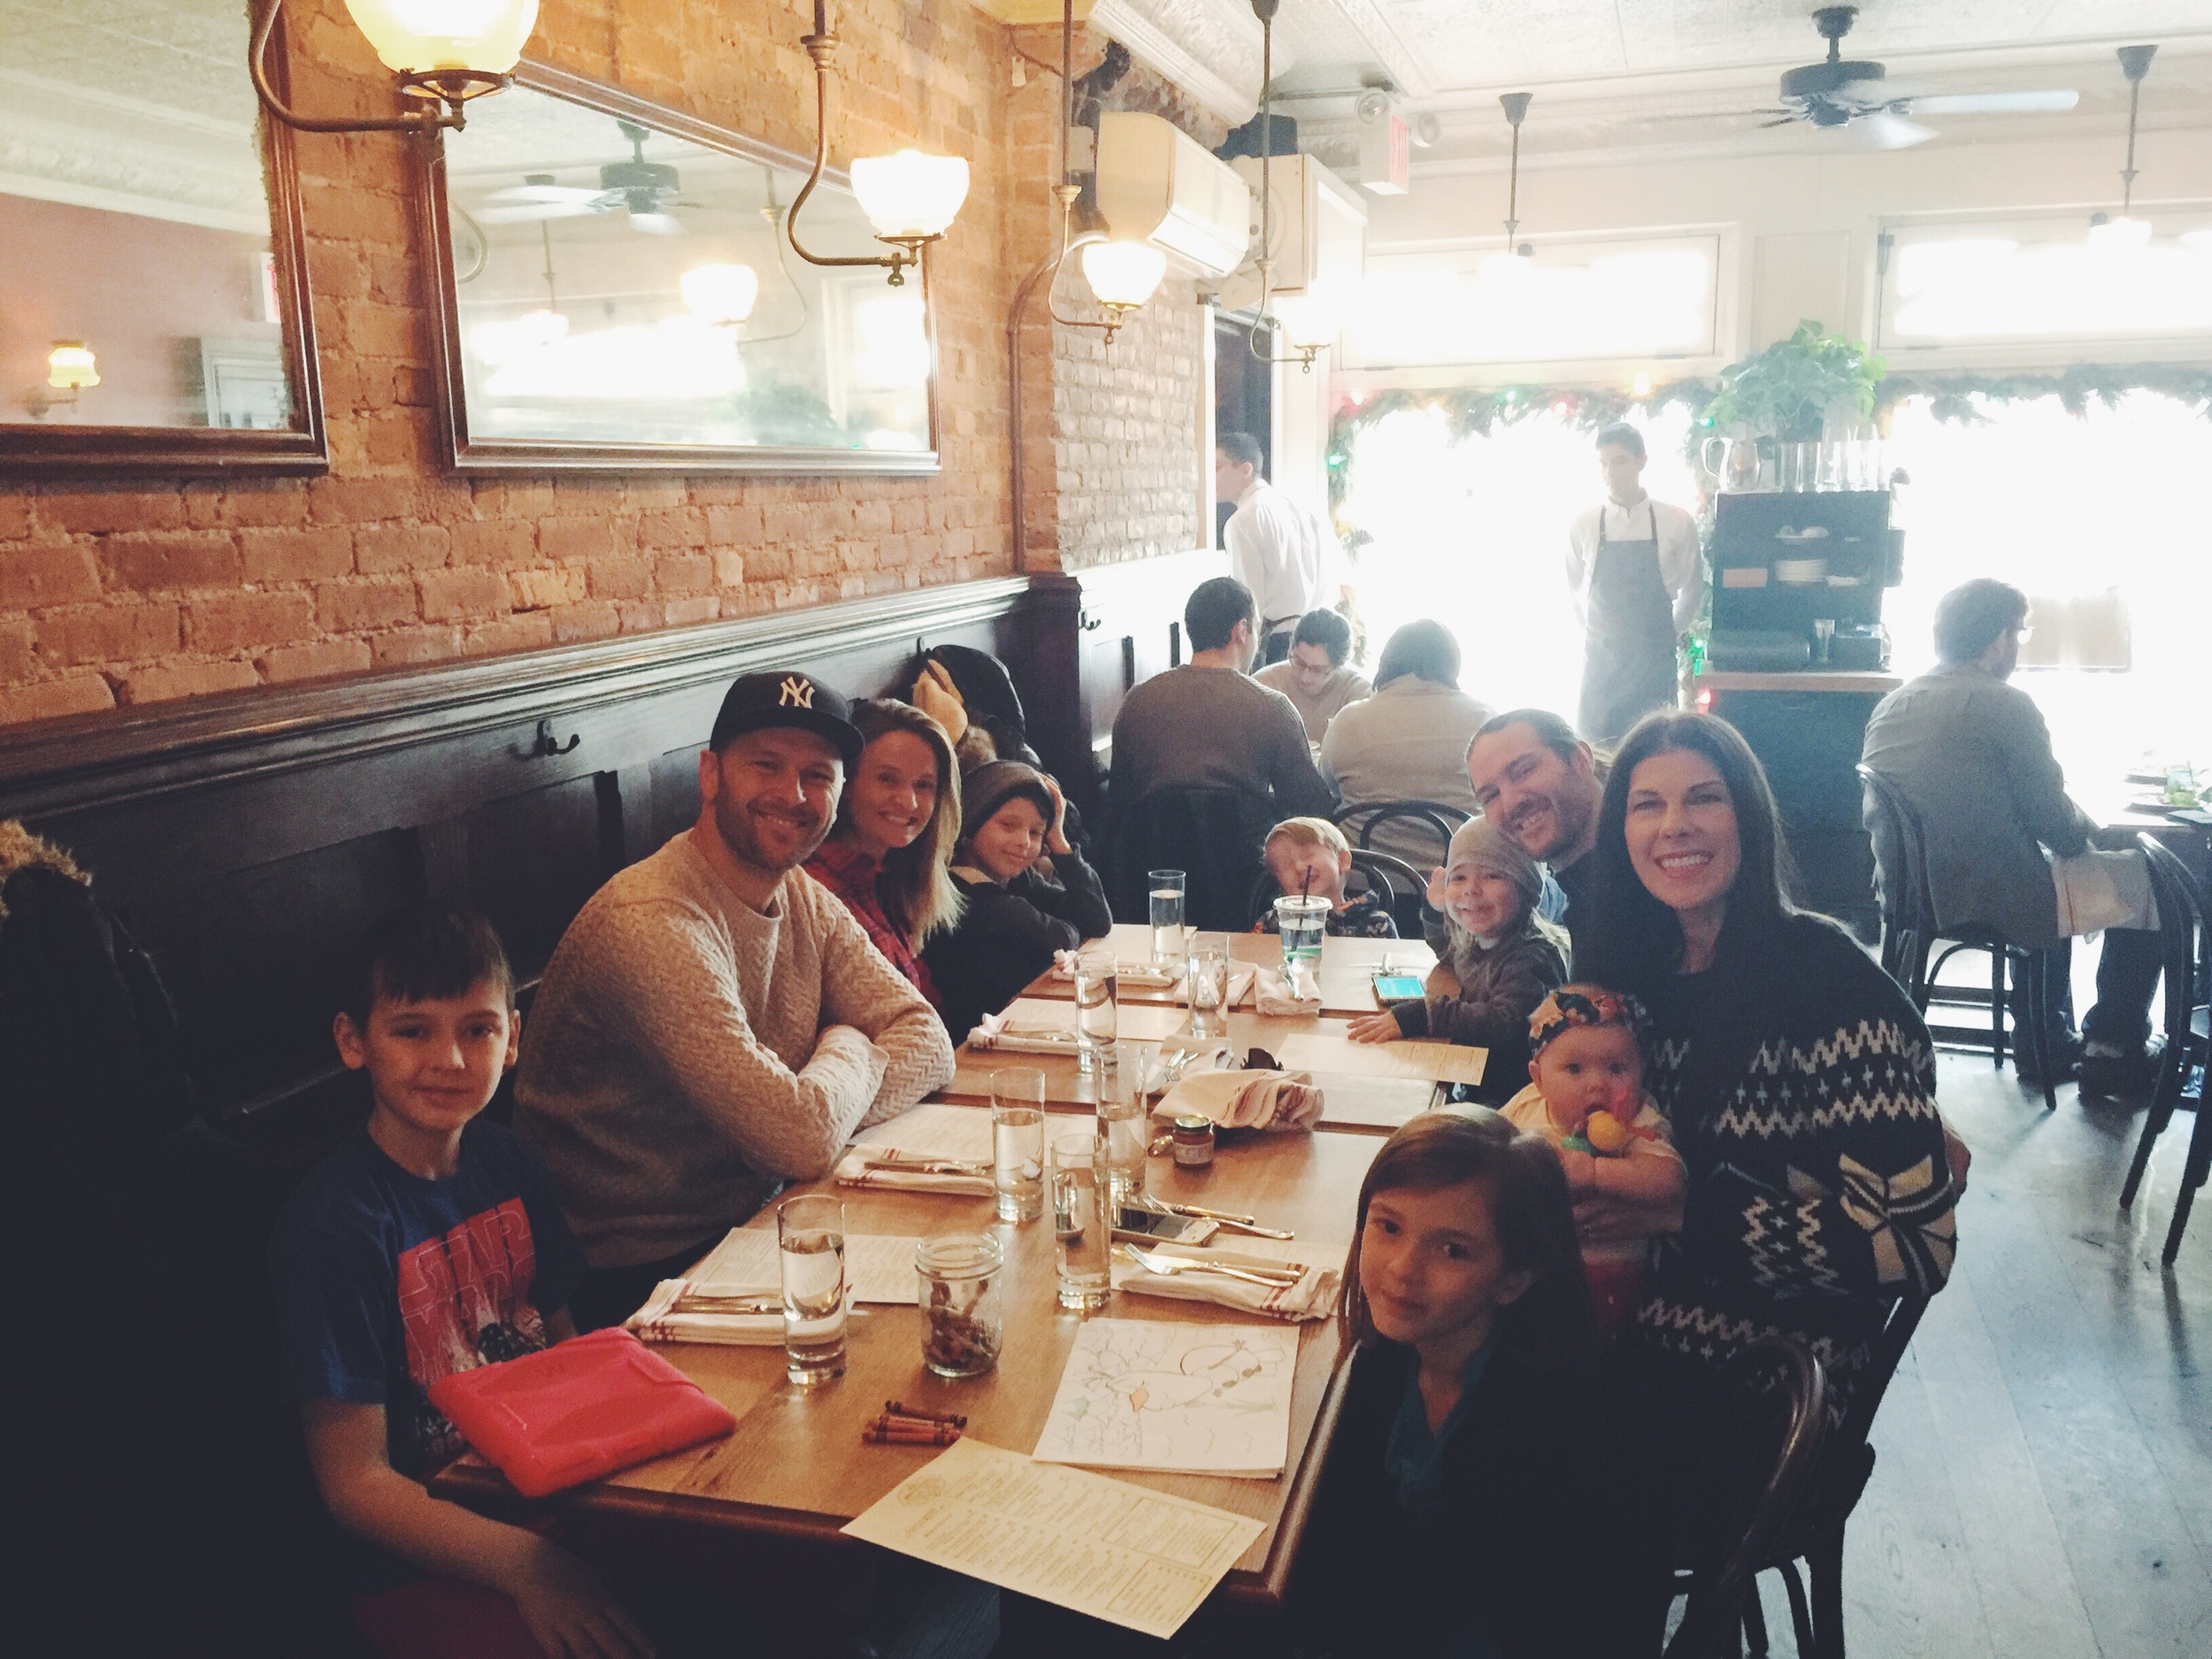 Brunch with the Giffords